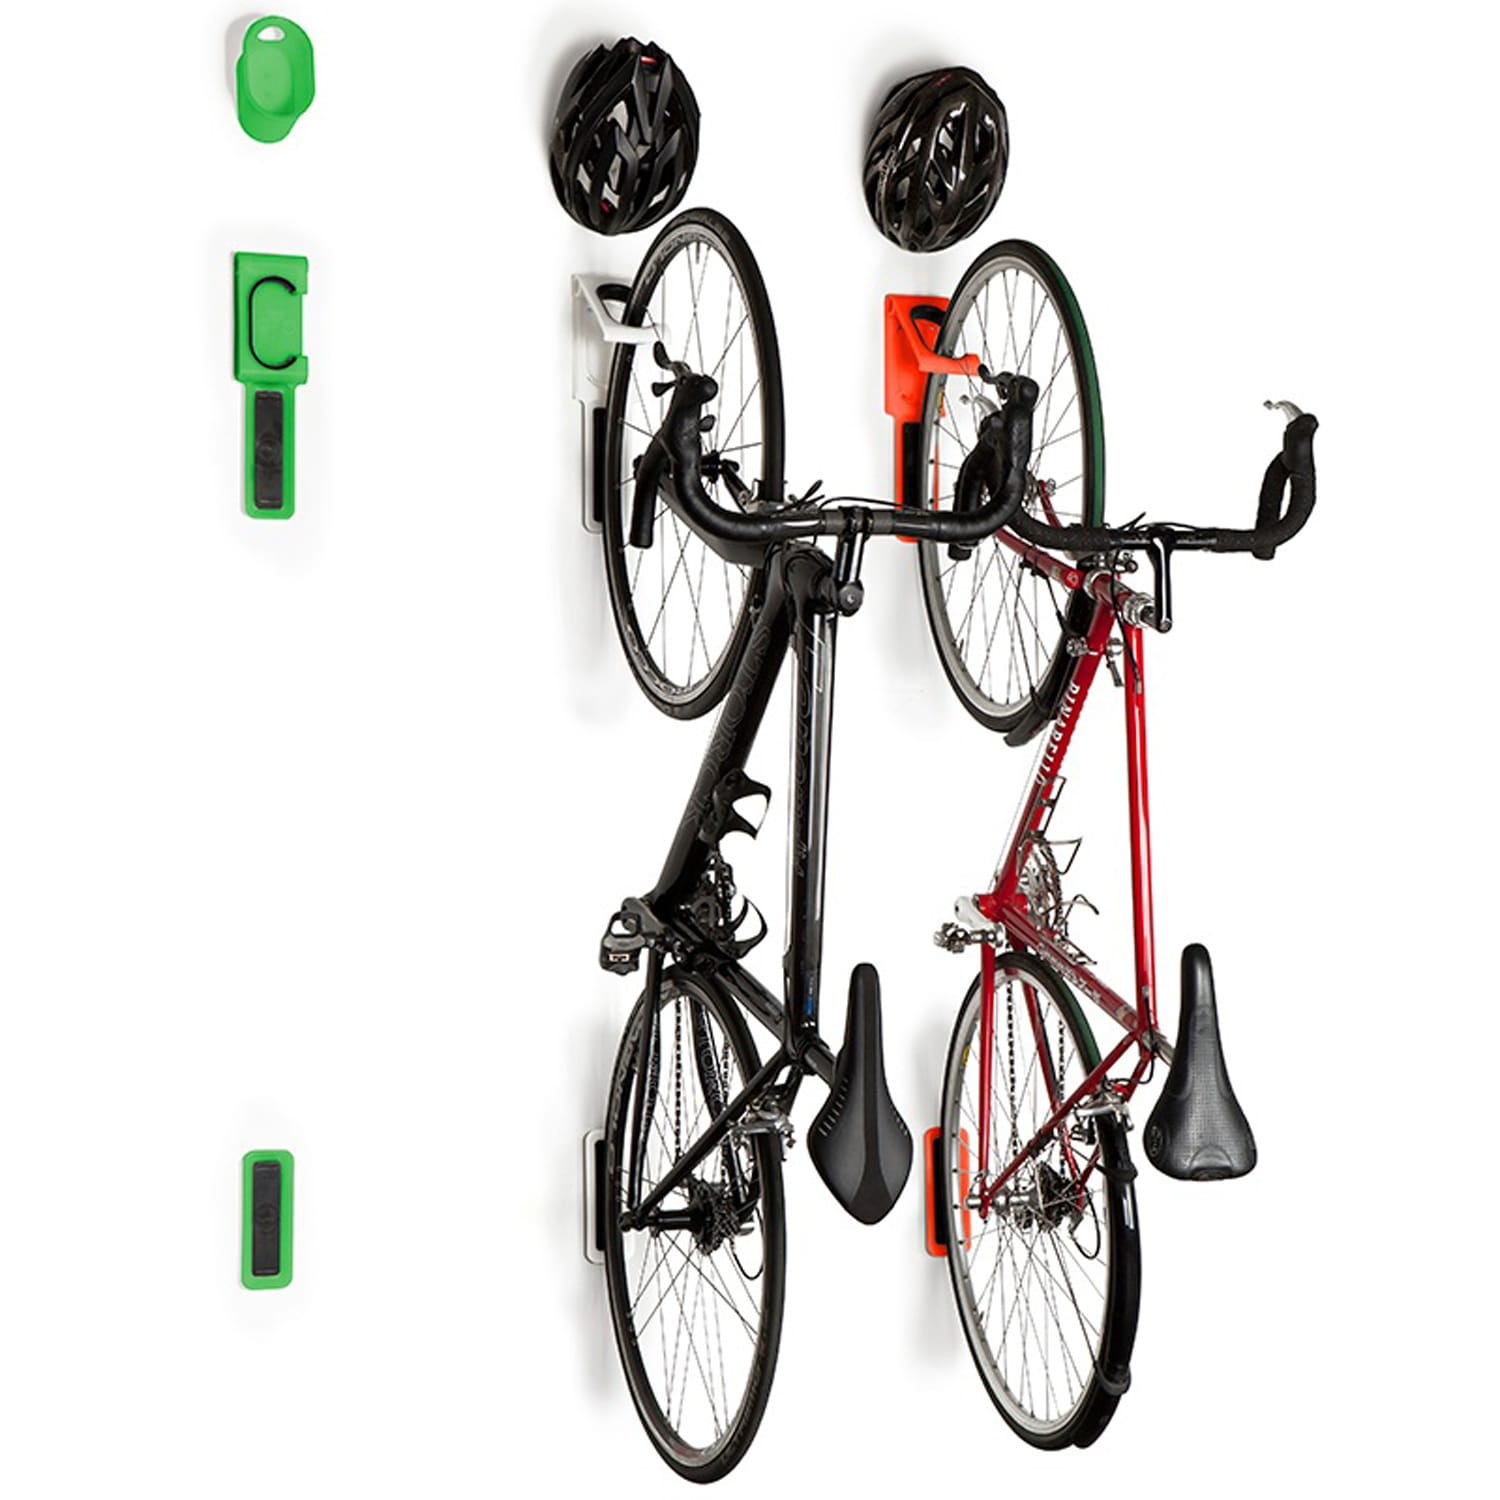 Cycloc Endo Wall Mounted Bike Holder All Terrain Cycles